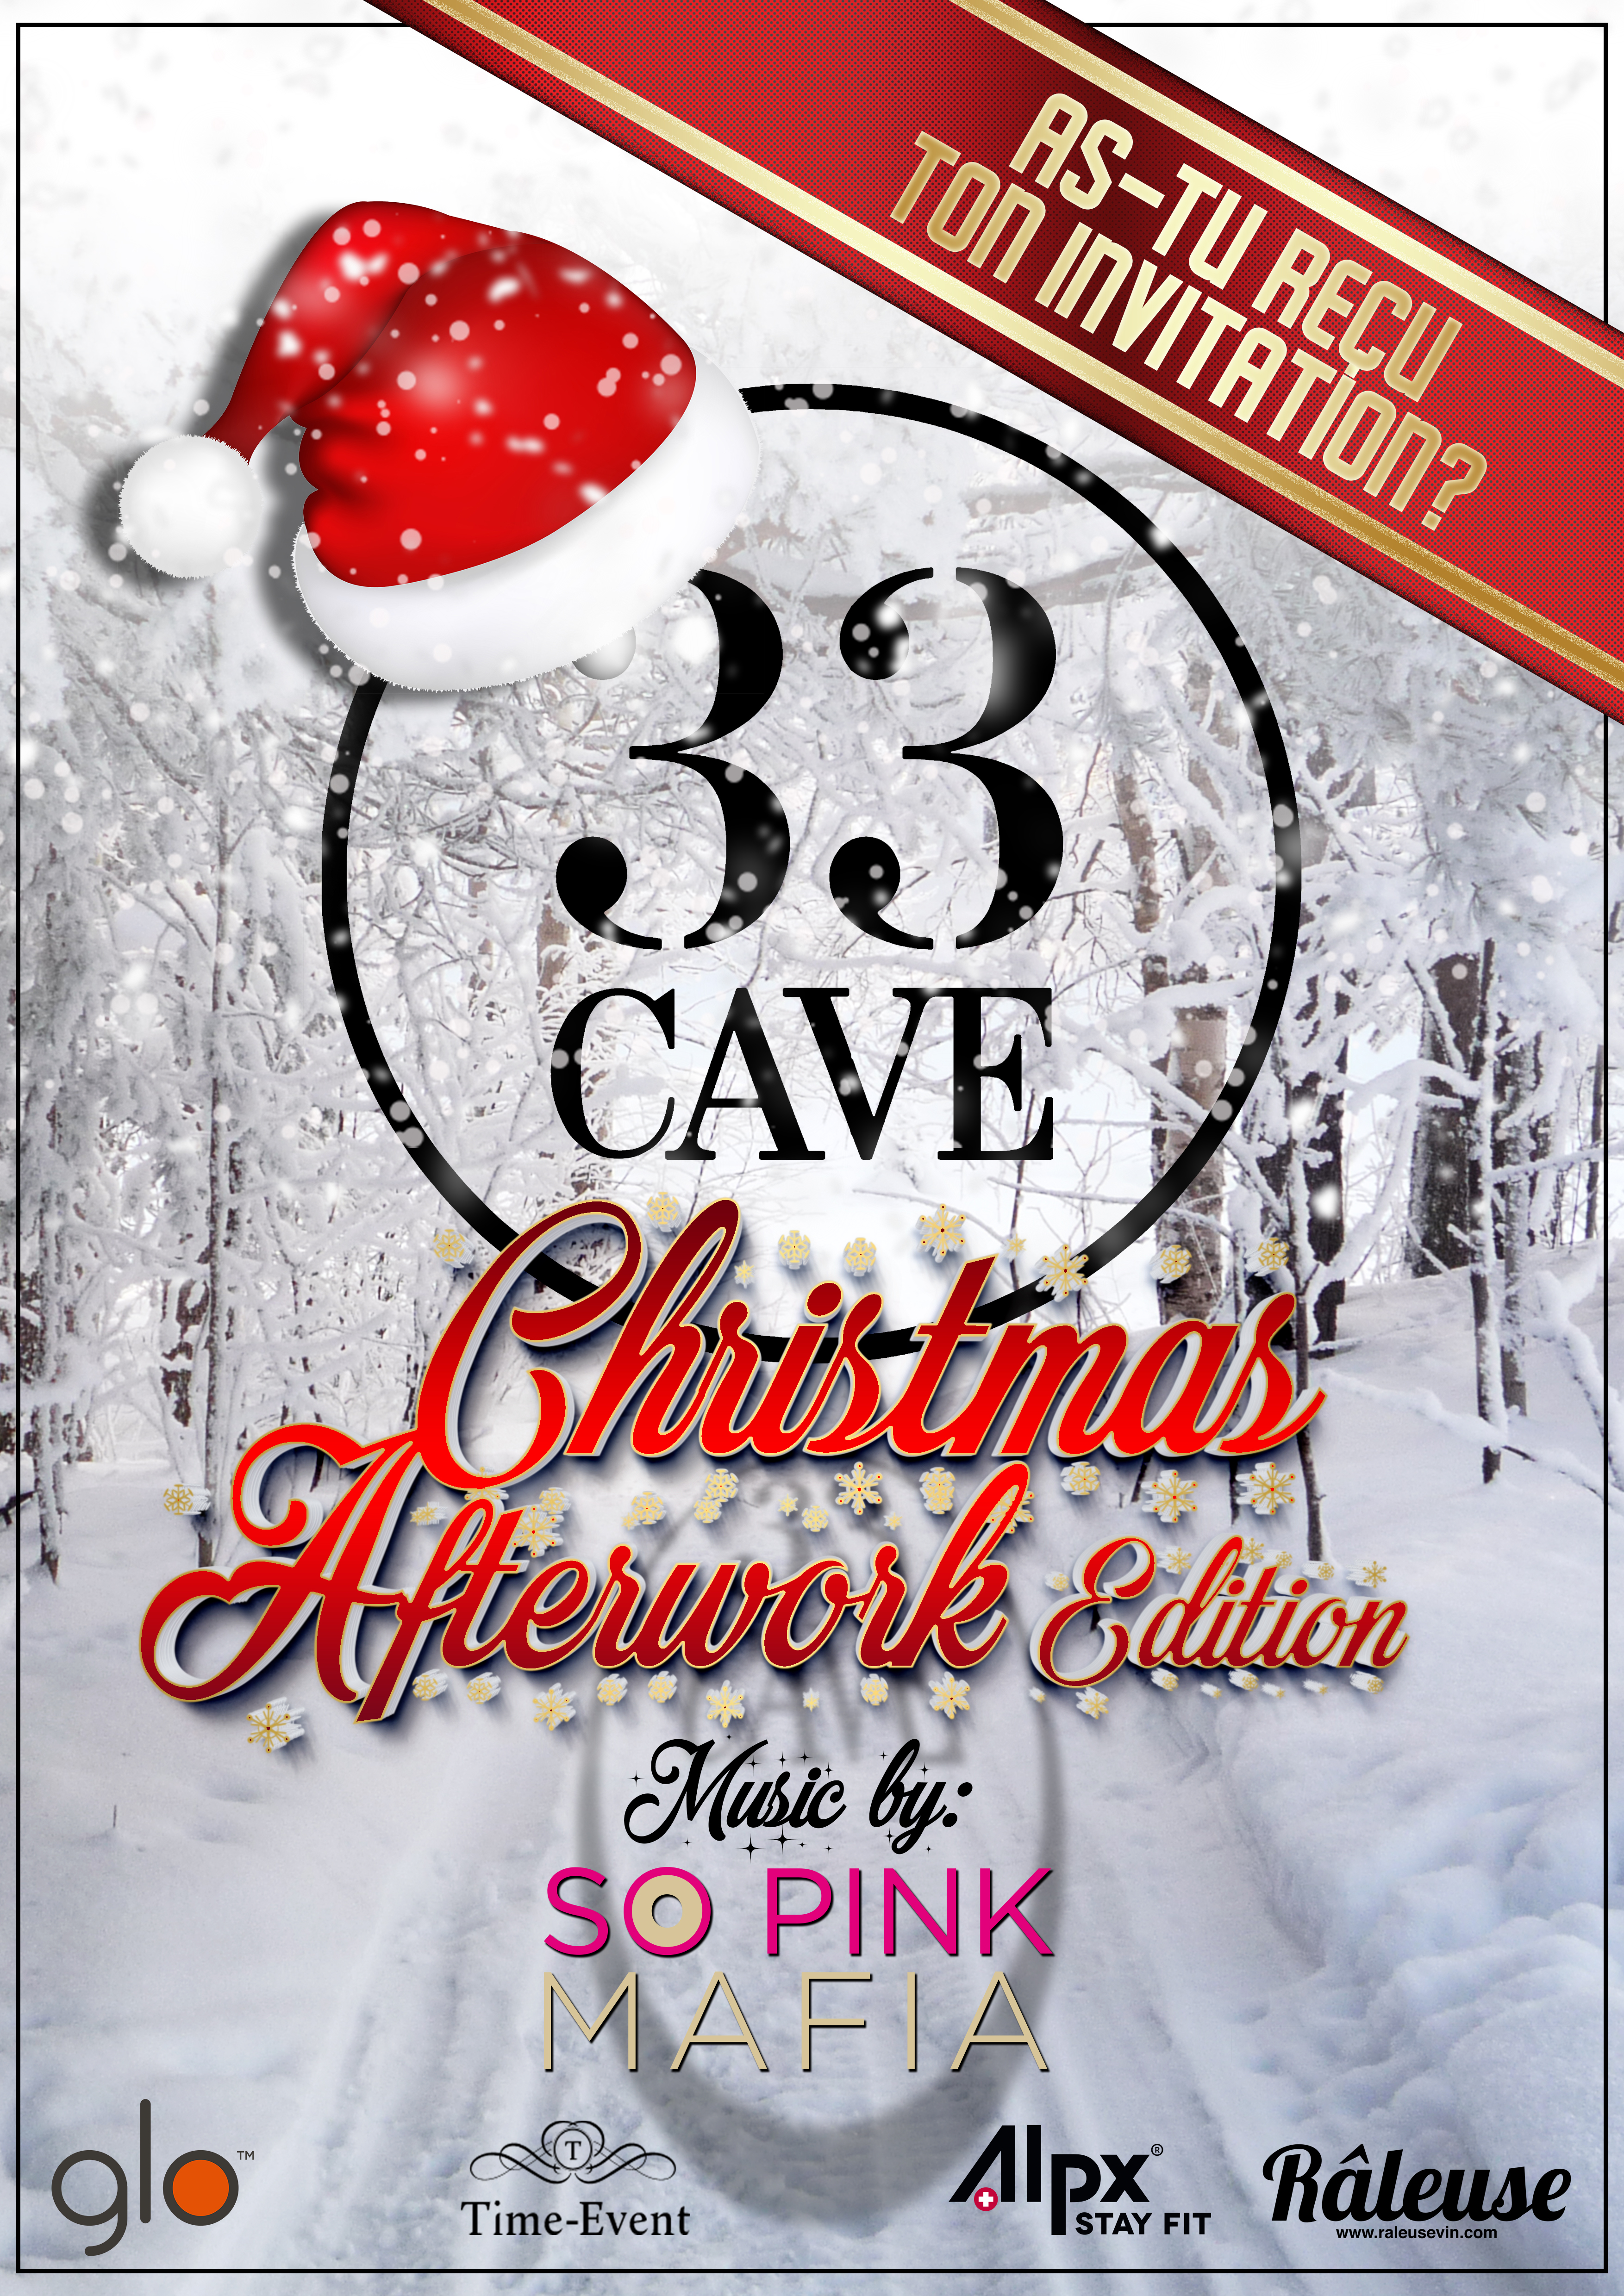 33 CAVE